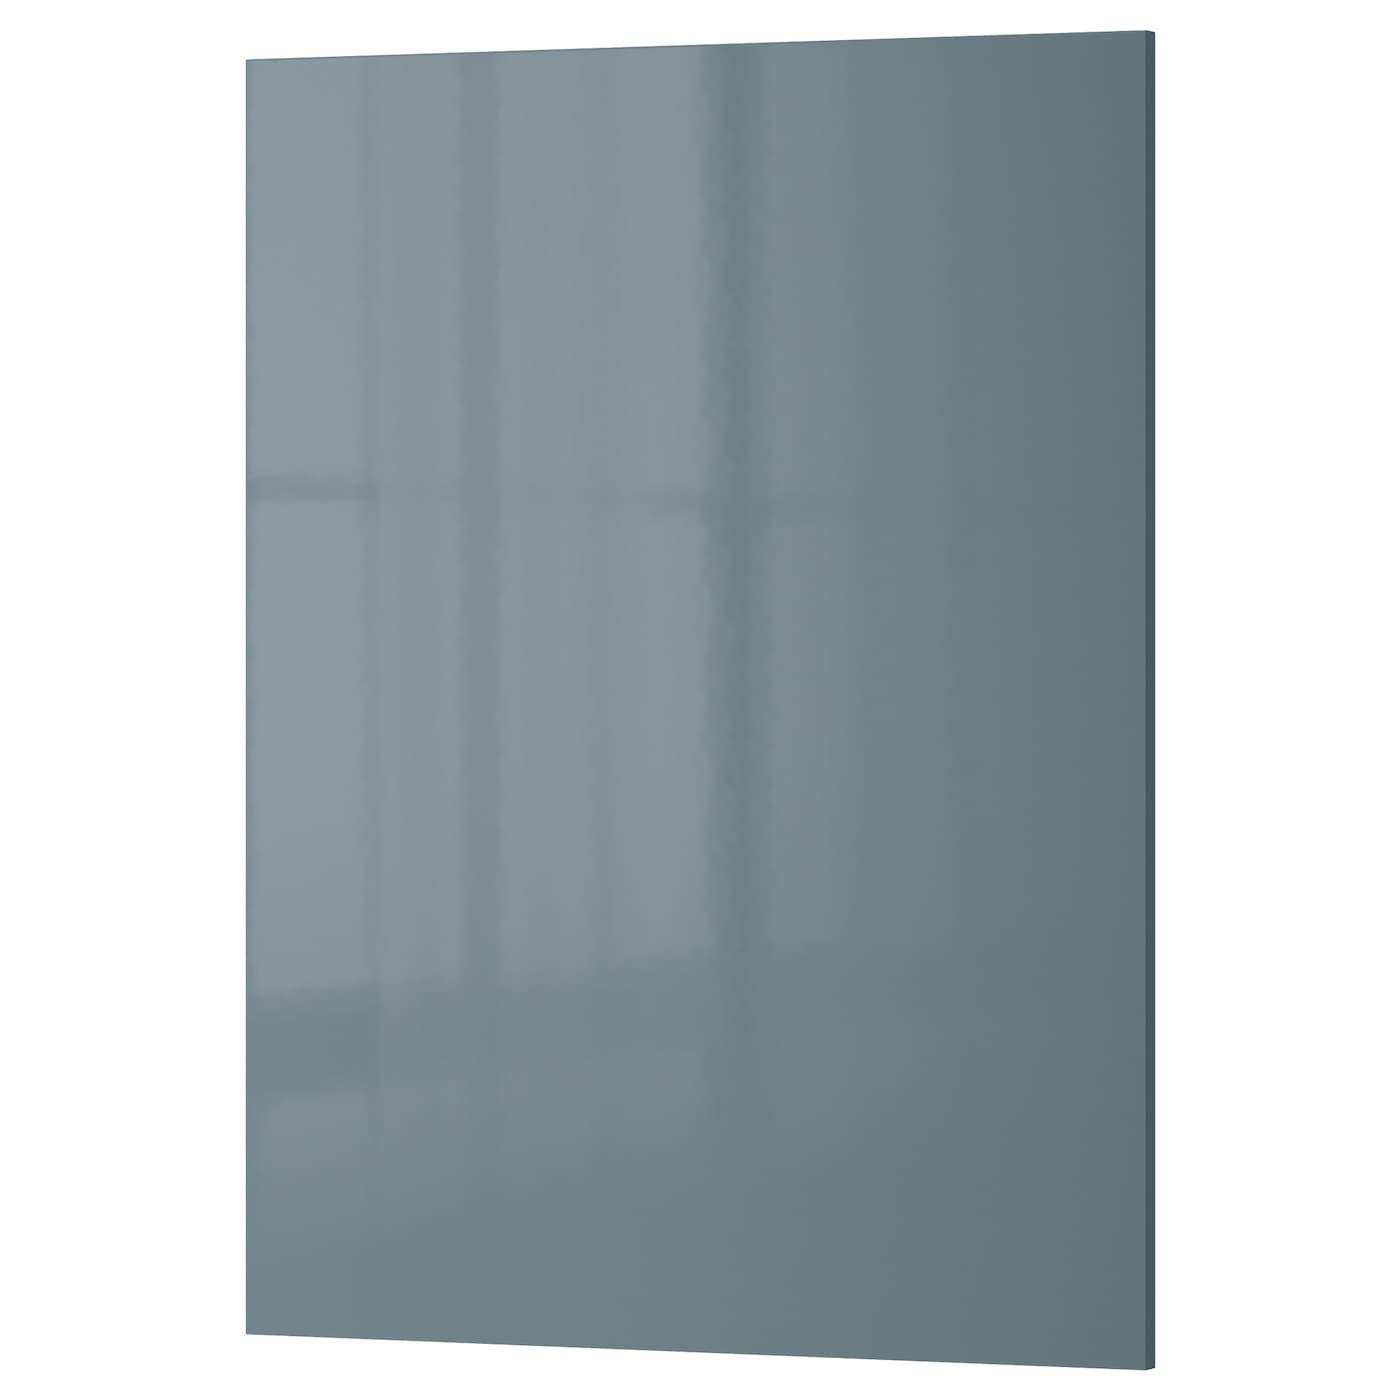 Bon Ikea Porte De Cuisine #12: IKEA KALLARP Door Covered With High-gloss Foil; Gives An Easy Care Finish.